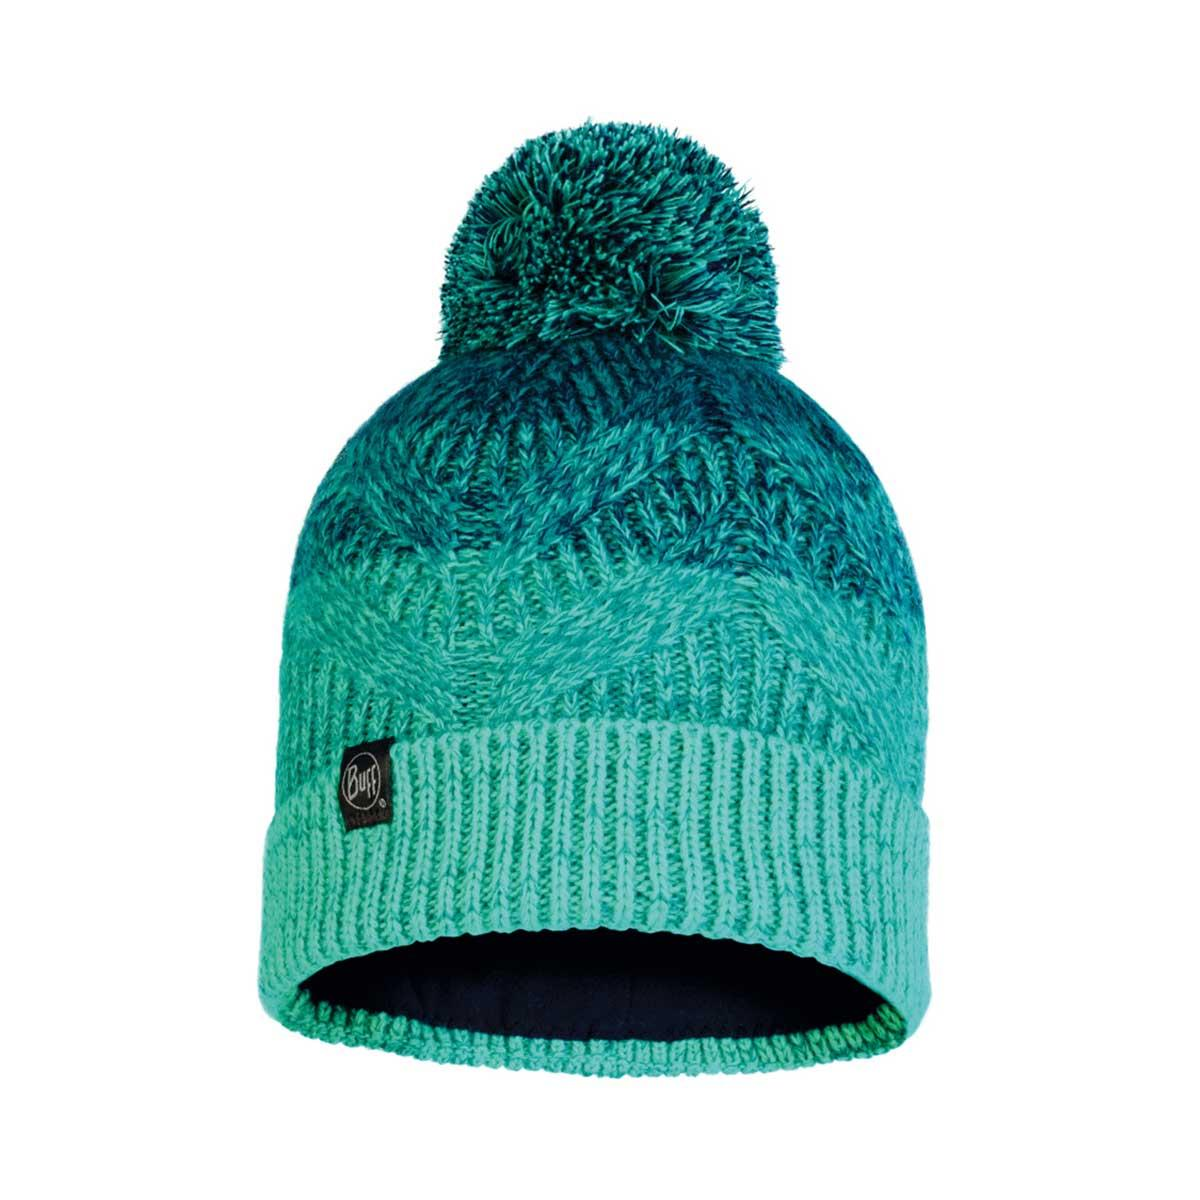 Buff Masha Knit Hat in Turquoise